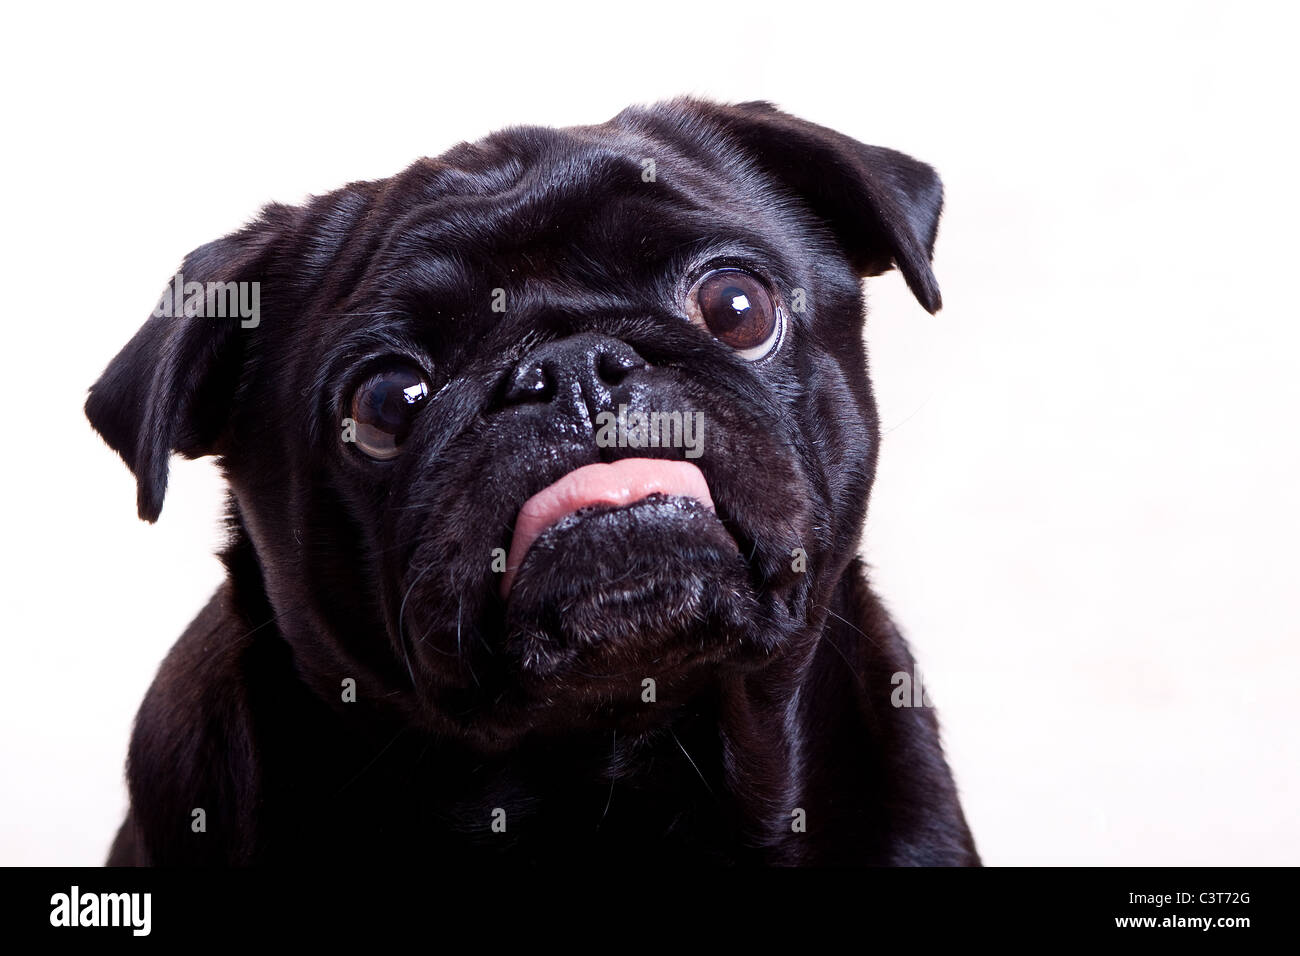 Pug Black - Stock Image